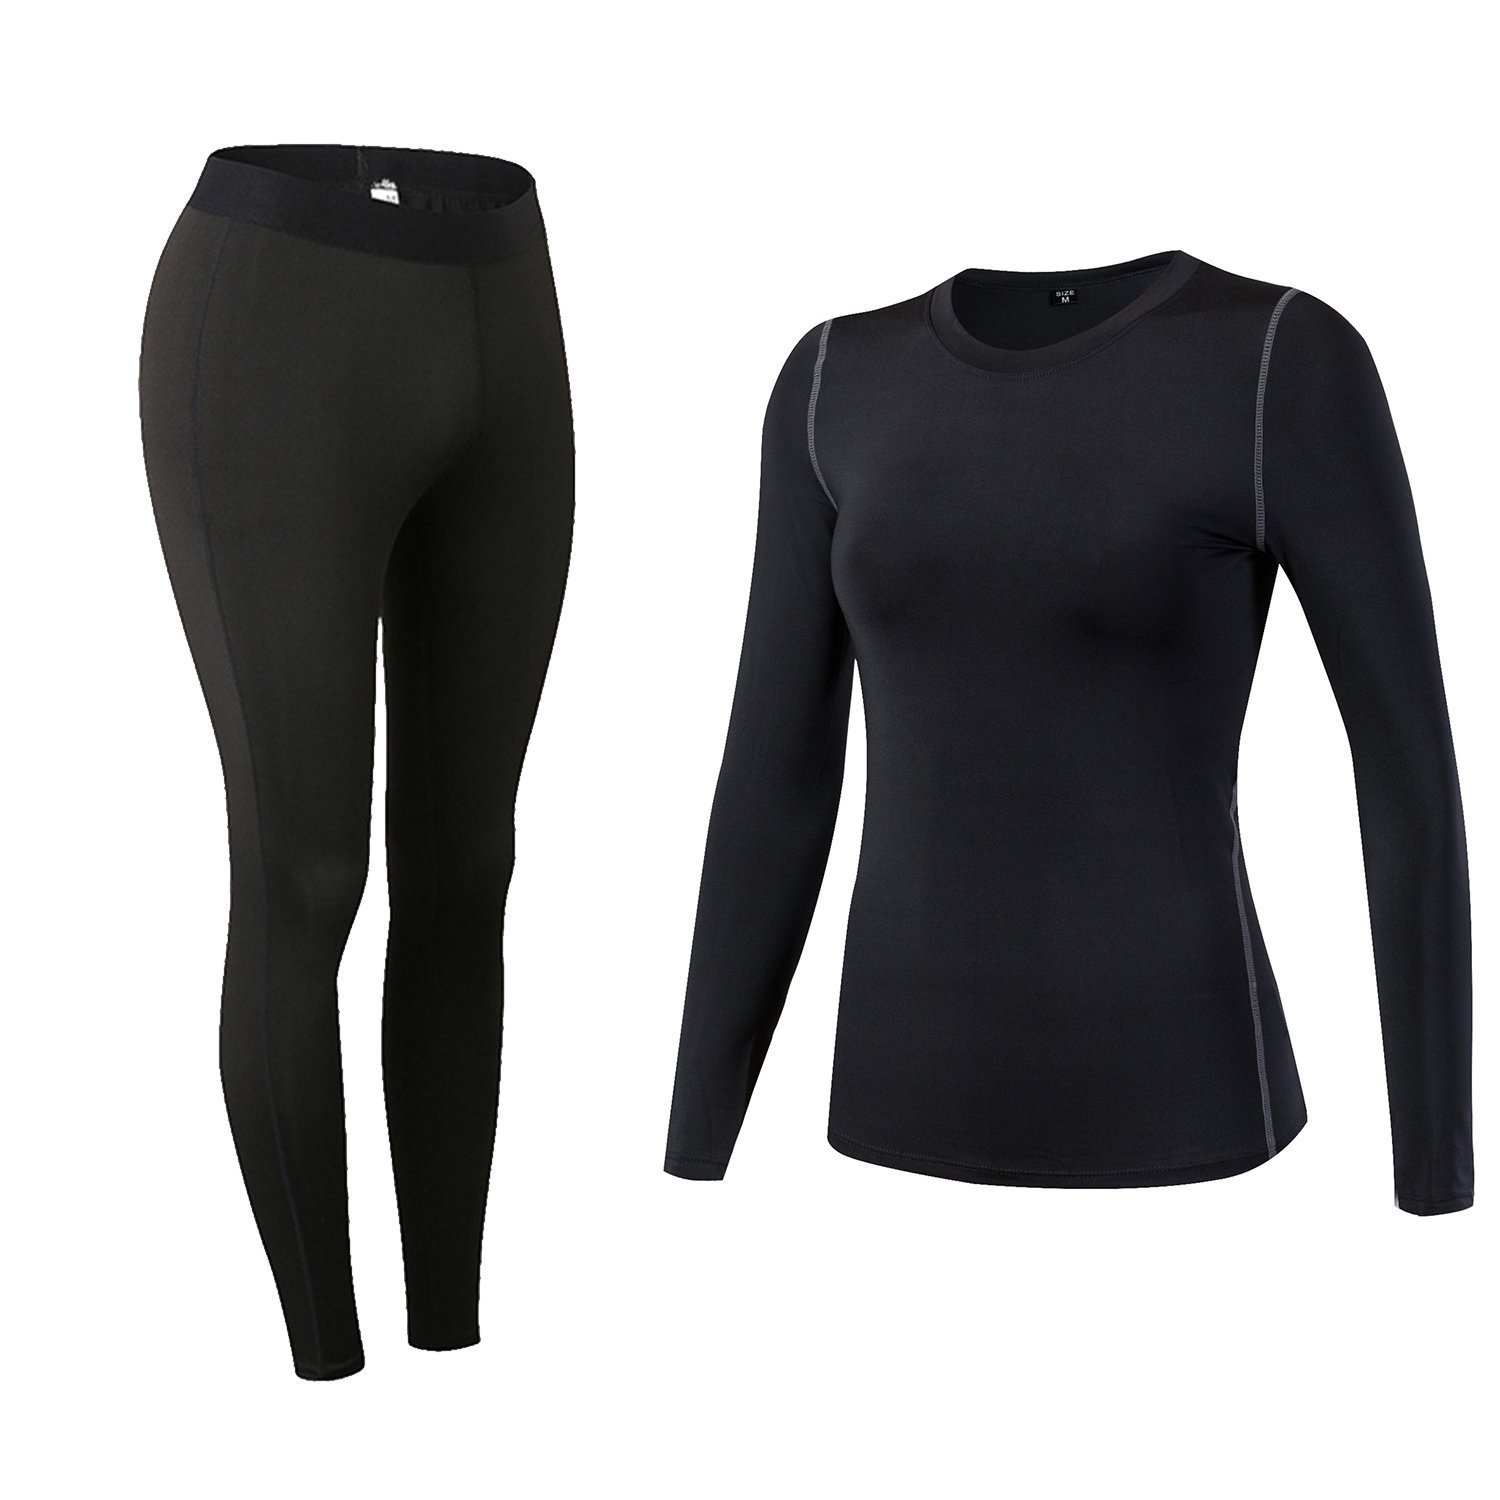 Minghe Women's Thermal Underwear Set Stretch Seamless Tops and Bottom Solid Color Tight Base Layer Black M